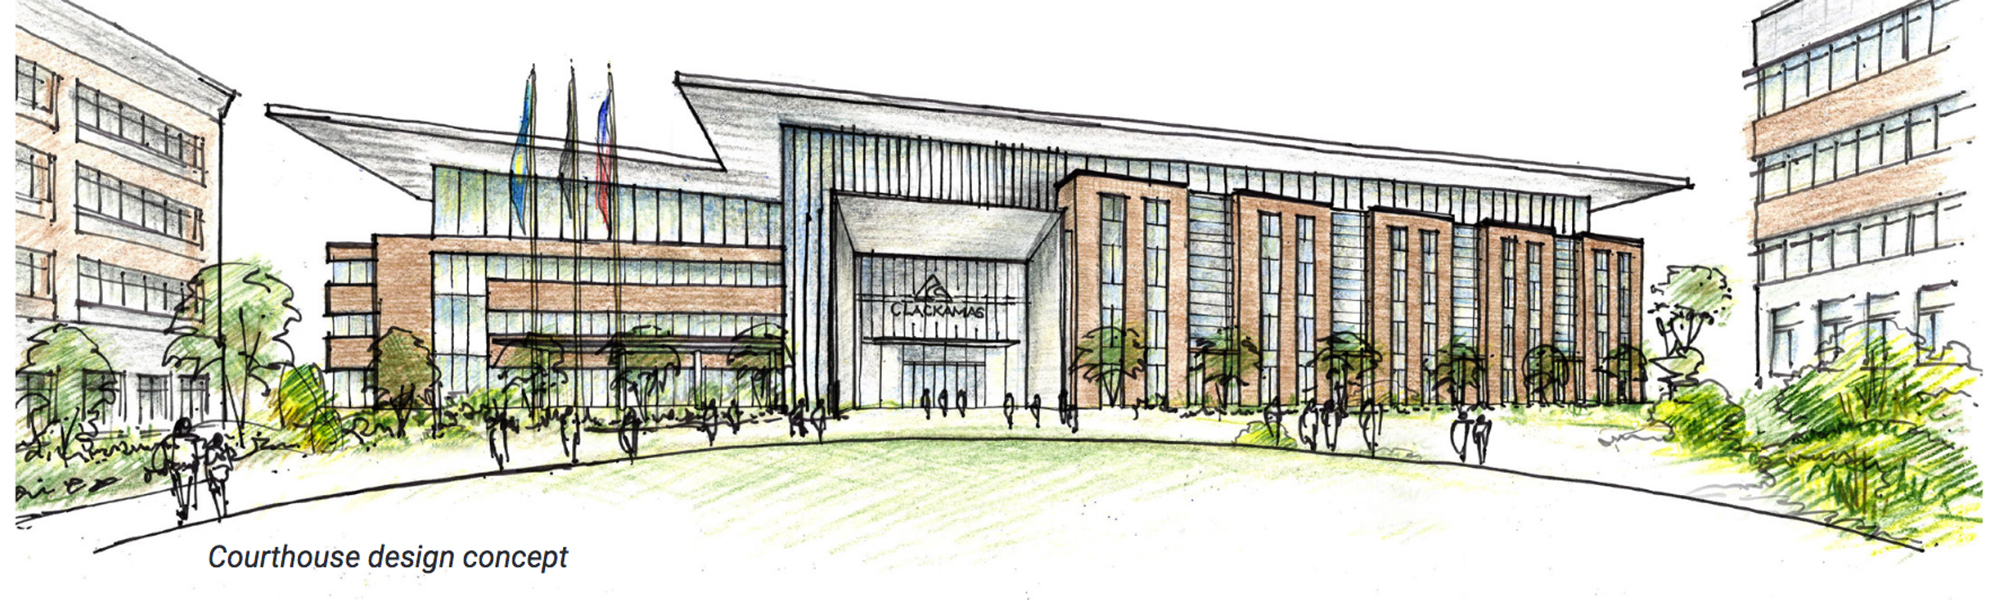 Courthouse Replacement Project | Clackamas County within Clackamas County Courthouse Schedule